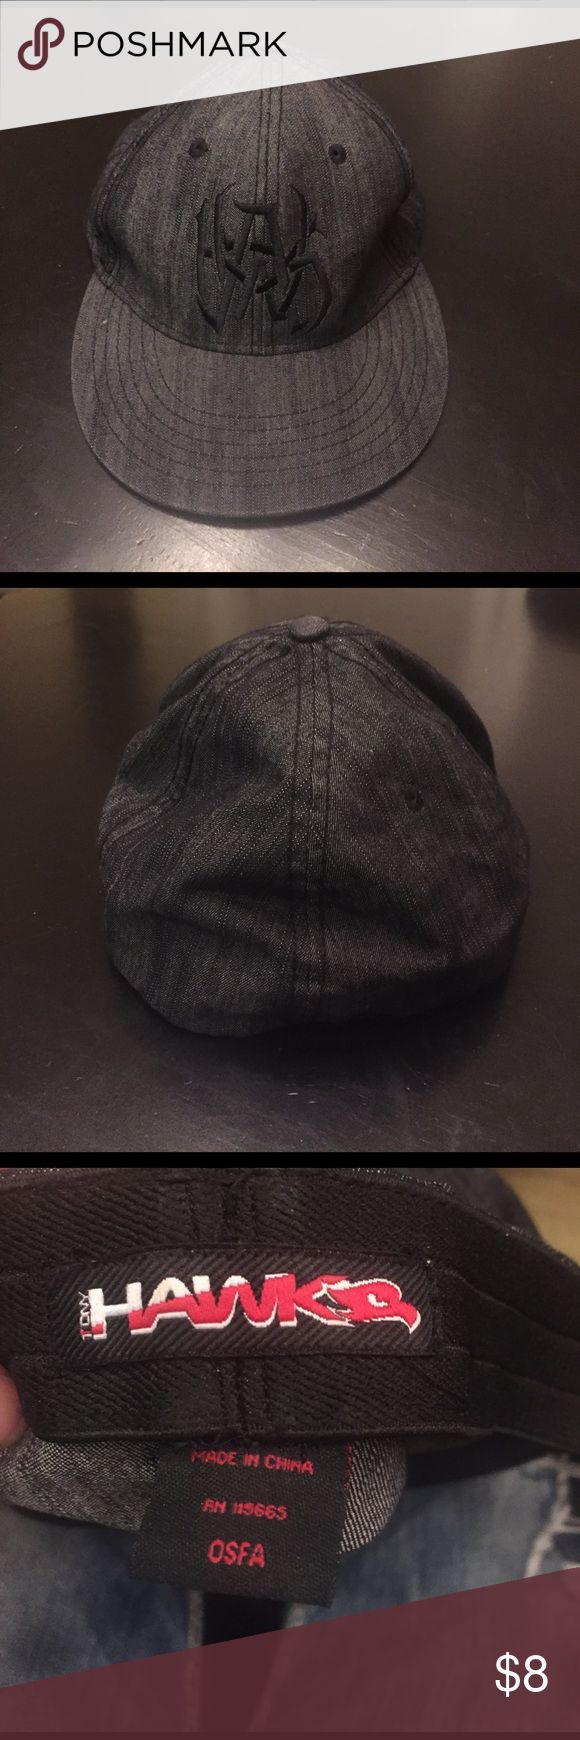 Tony Hawk Hat Tony HAWK skateboarding hat, good condition! OS but this is meant for for a teenager or men size. Tony Hawk Accessories Hats